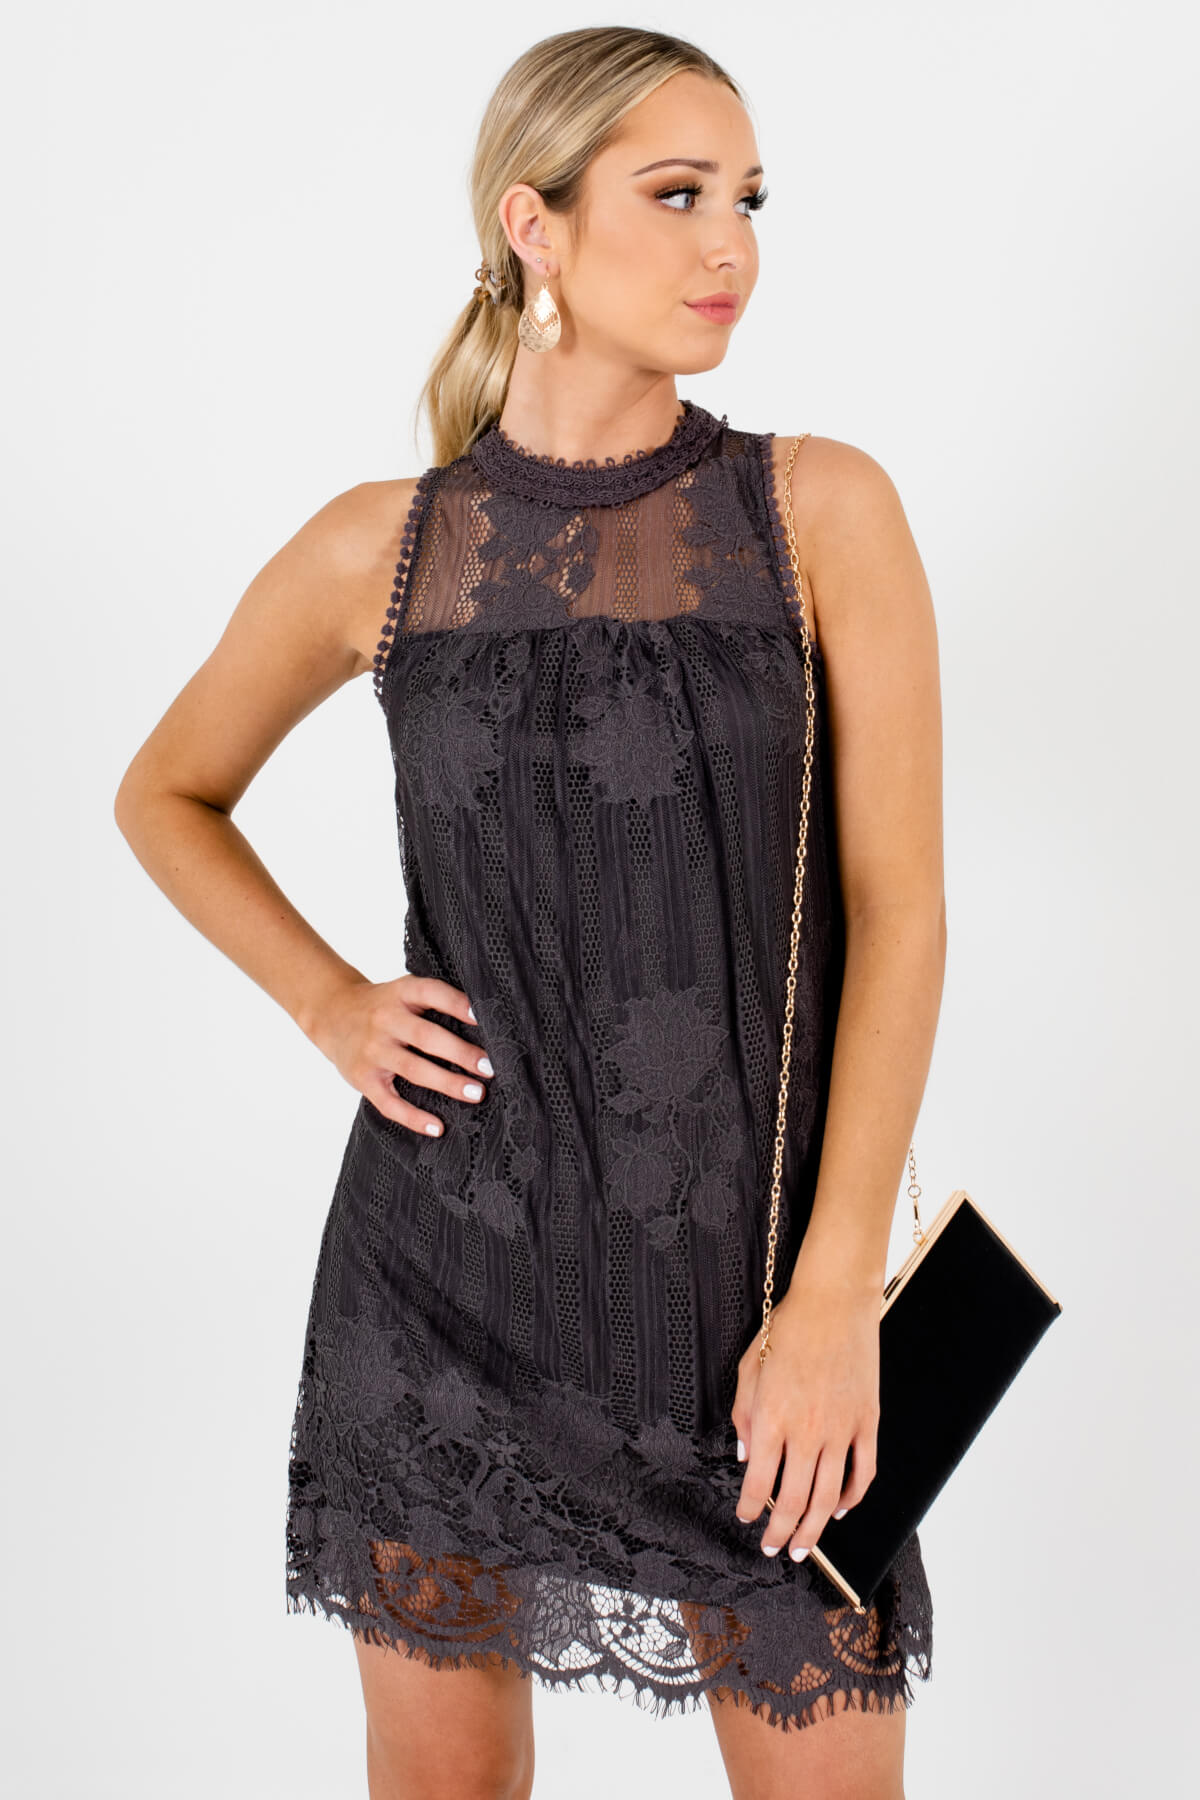 0e555353381 Charcoal Gray Lace Overlay Boutique Mini Dresses for Women